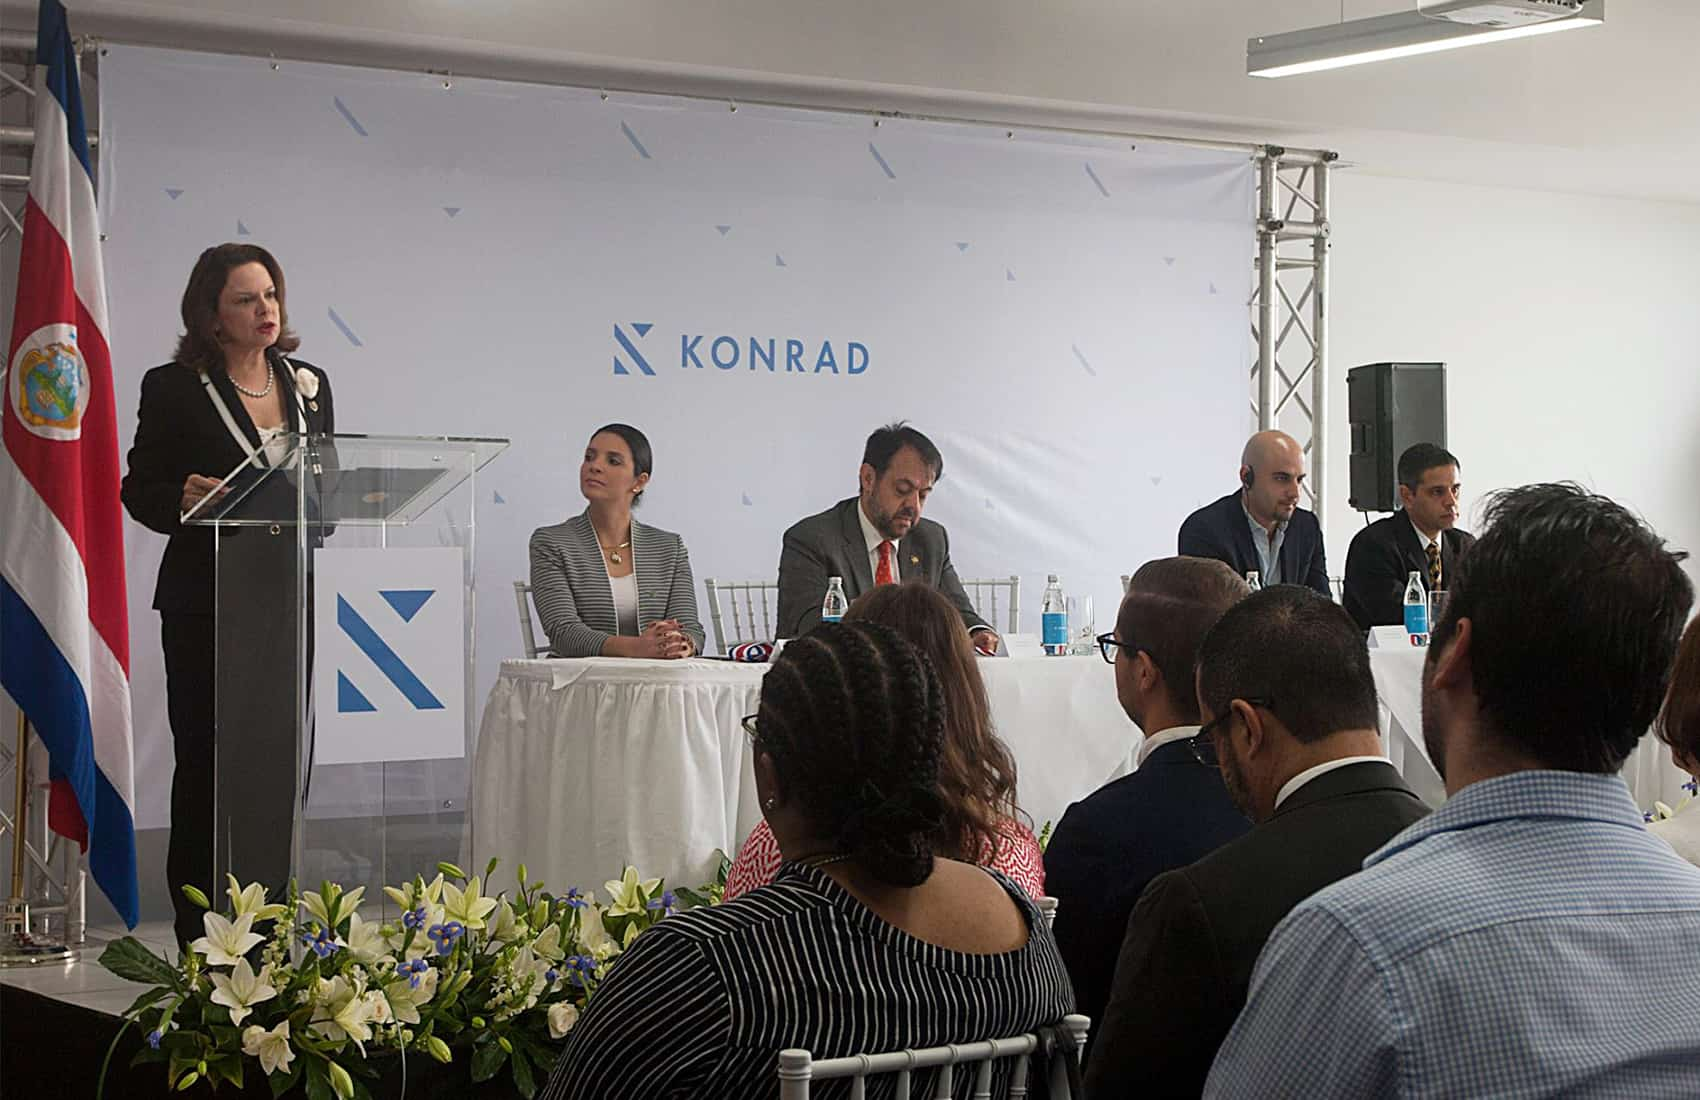 Konrad Group opening in Costa Rica. Aug. 22, 2016.